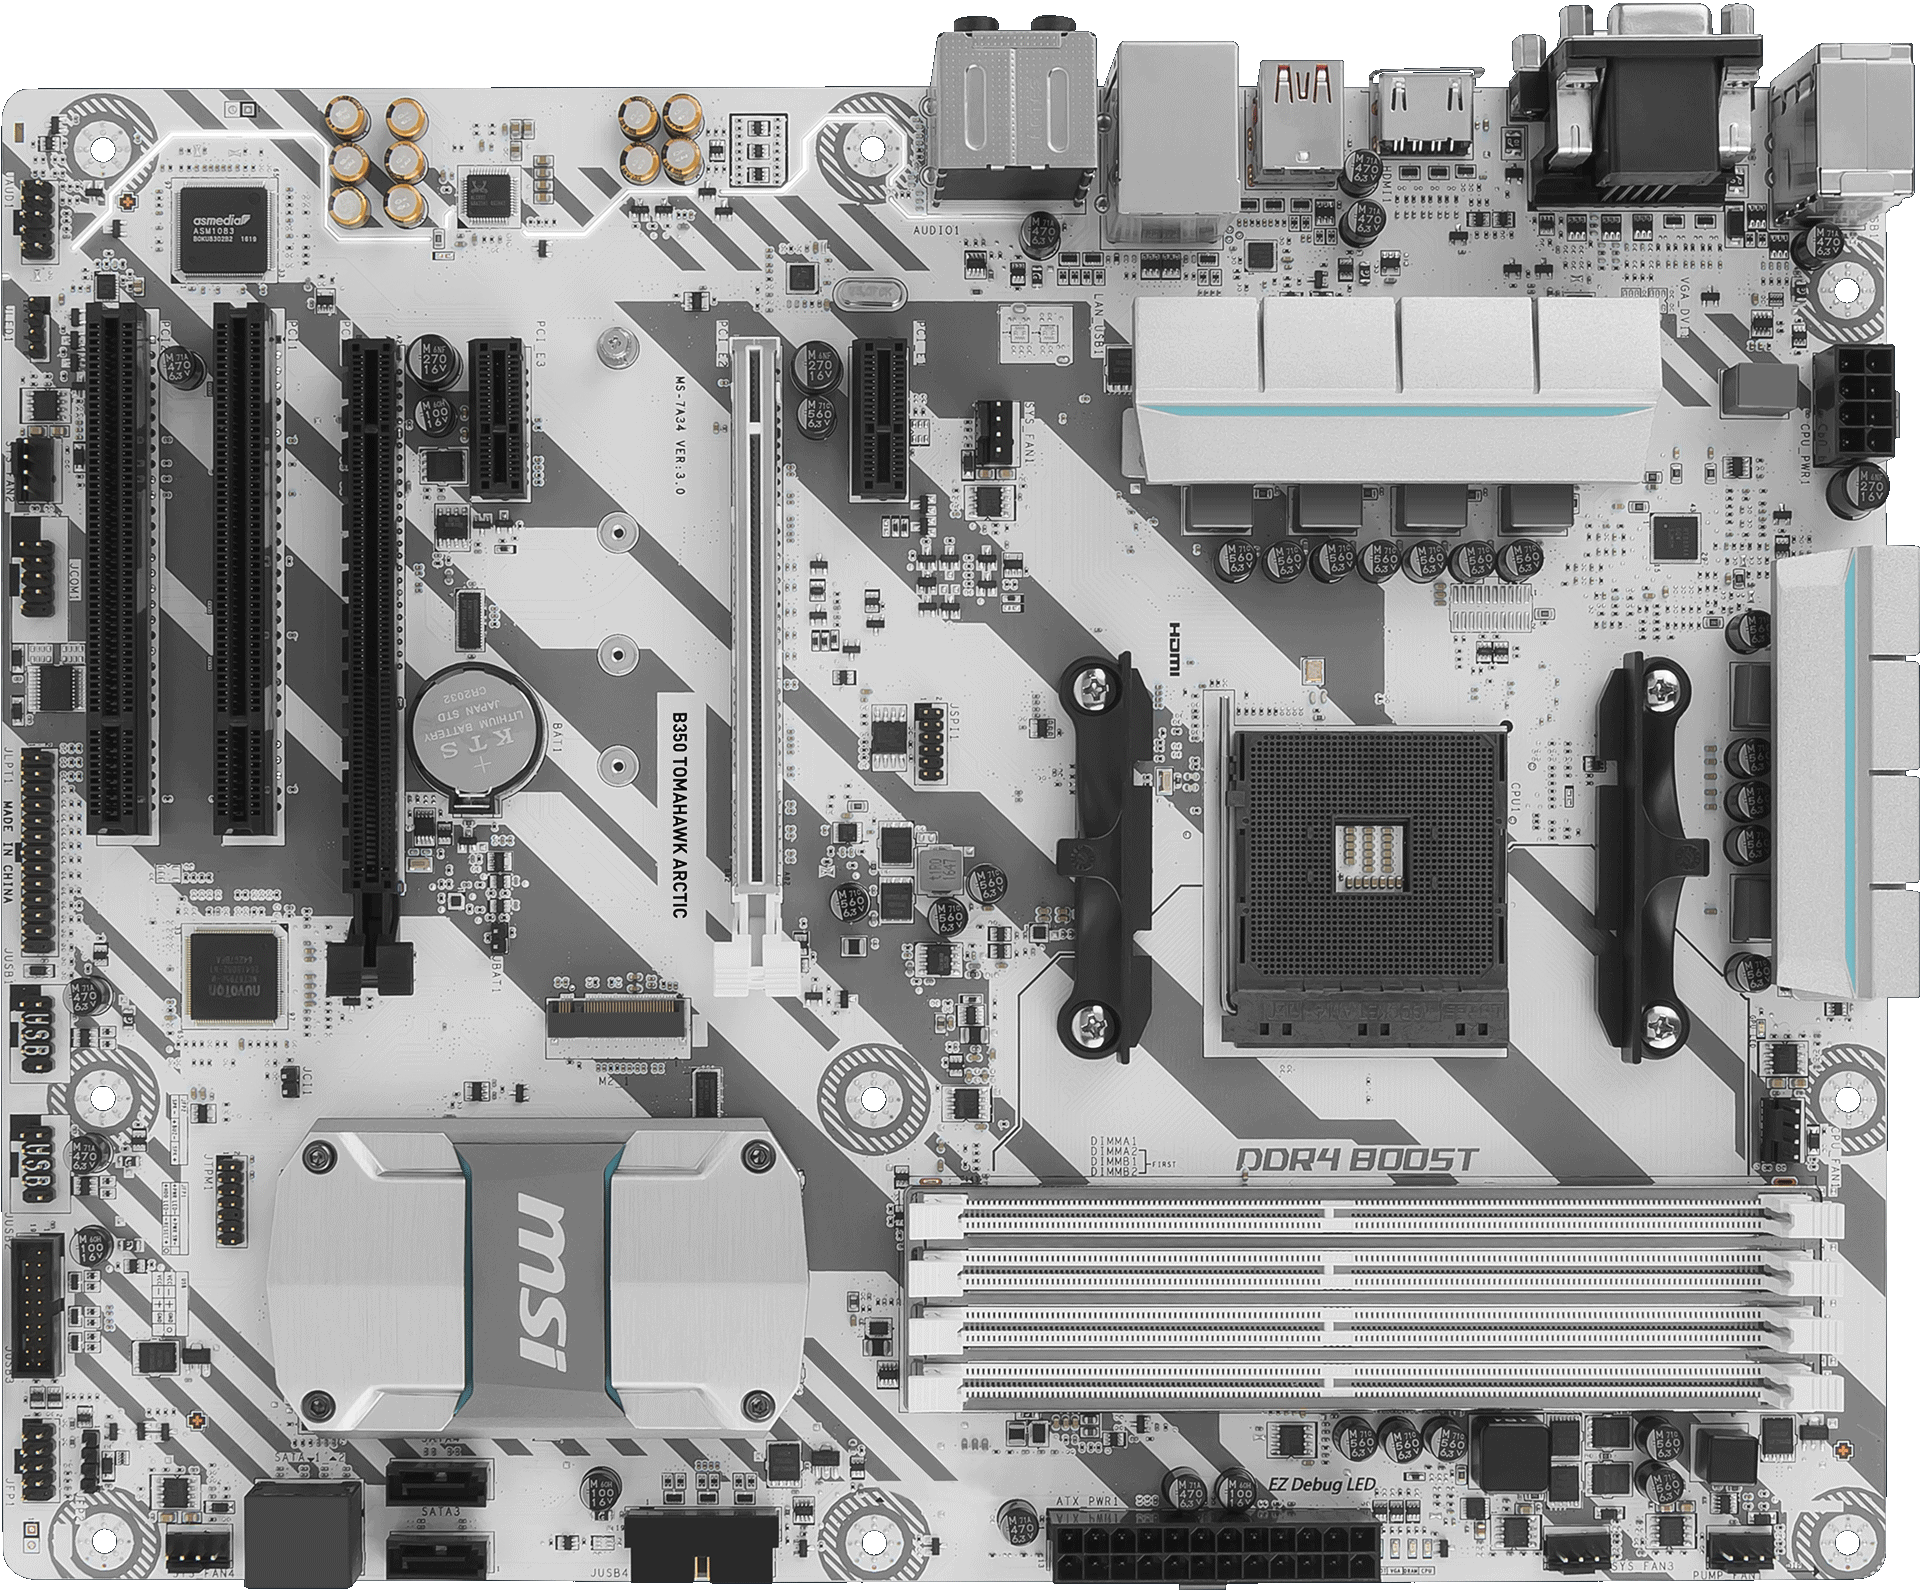 B350 TOMAHAWK ARCTIC | Motherboard - The world leader in motherboard